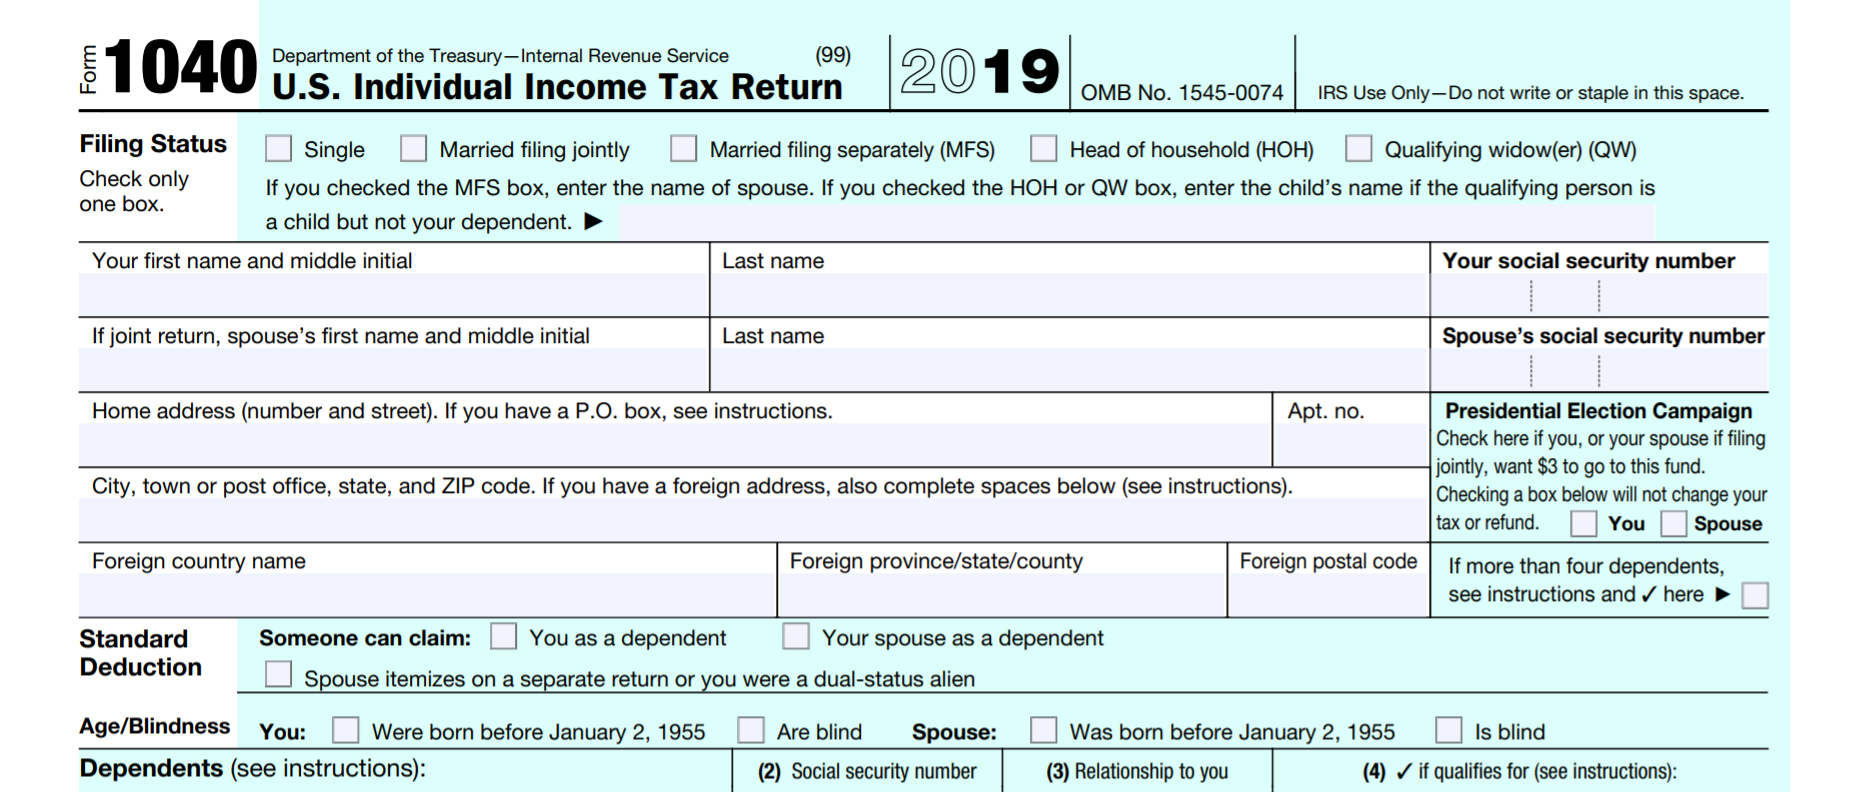 Expect Long Delays In Getting Refunds If You File A Paper Tax Return Tax Policy Center